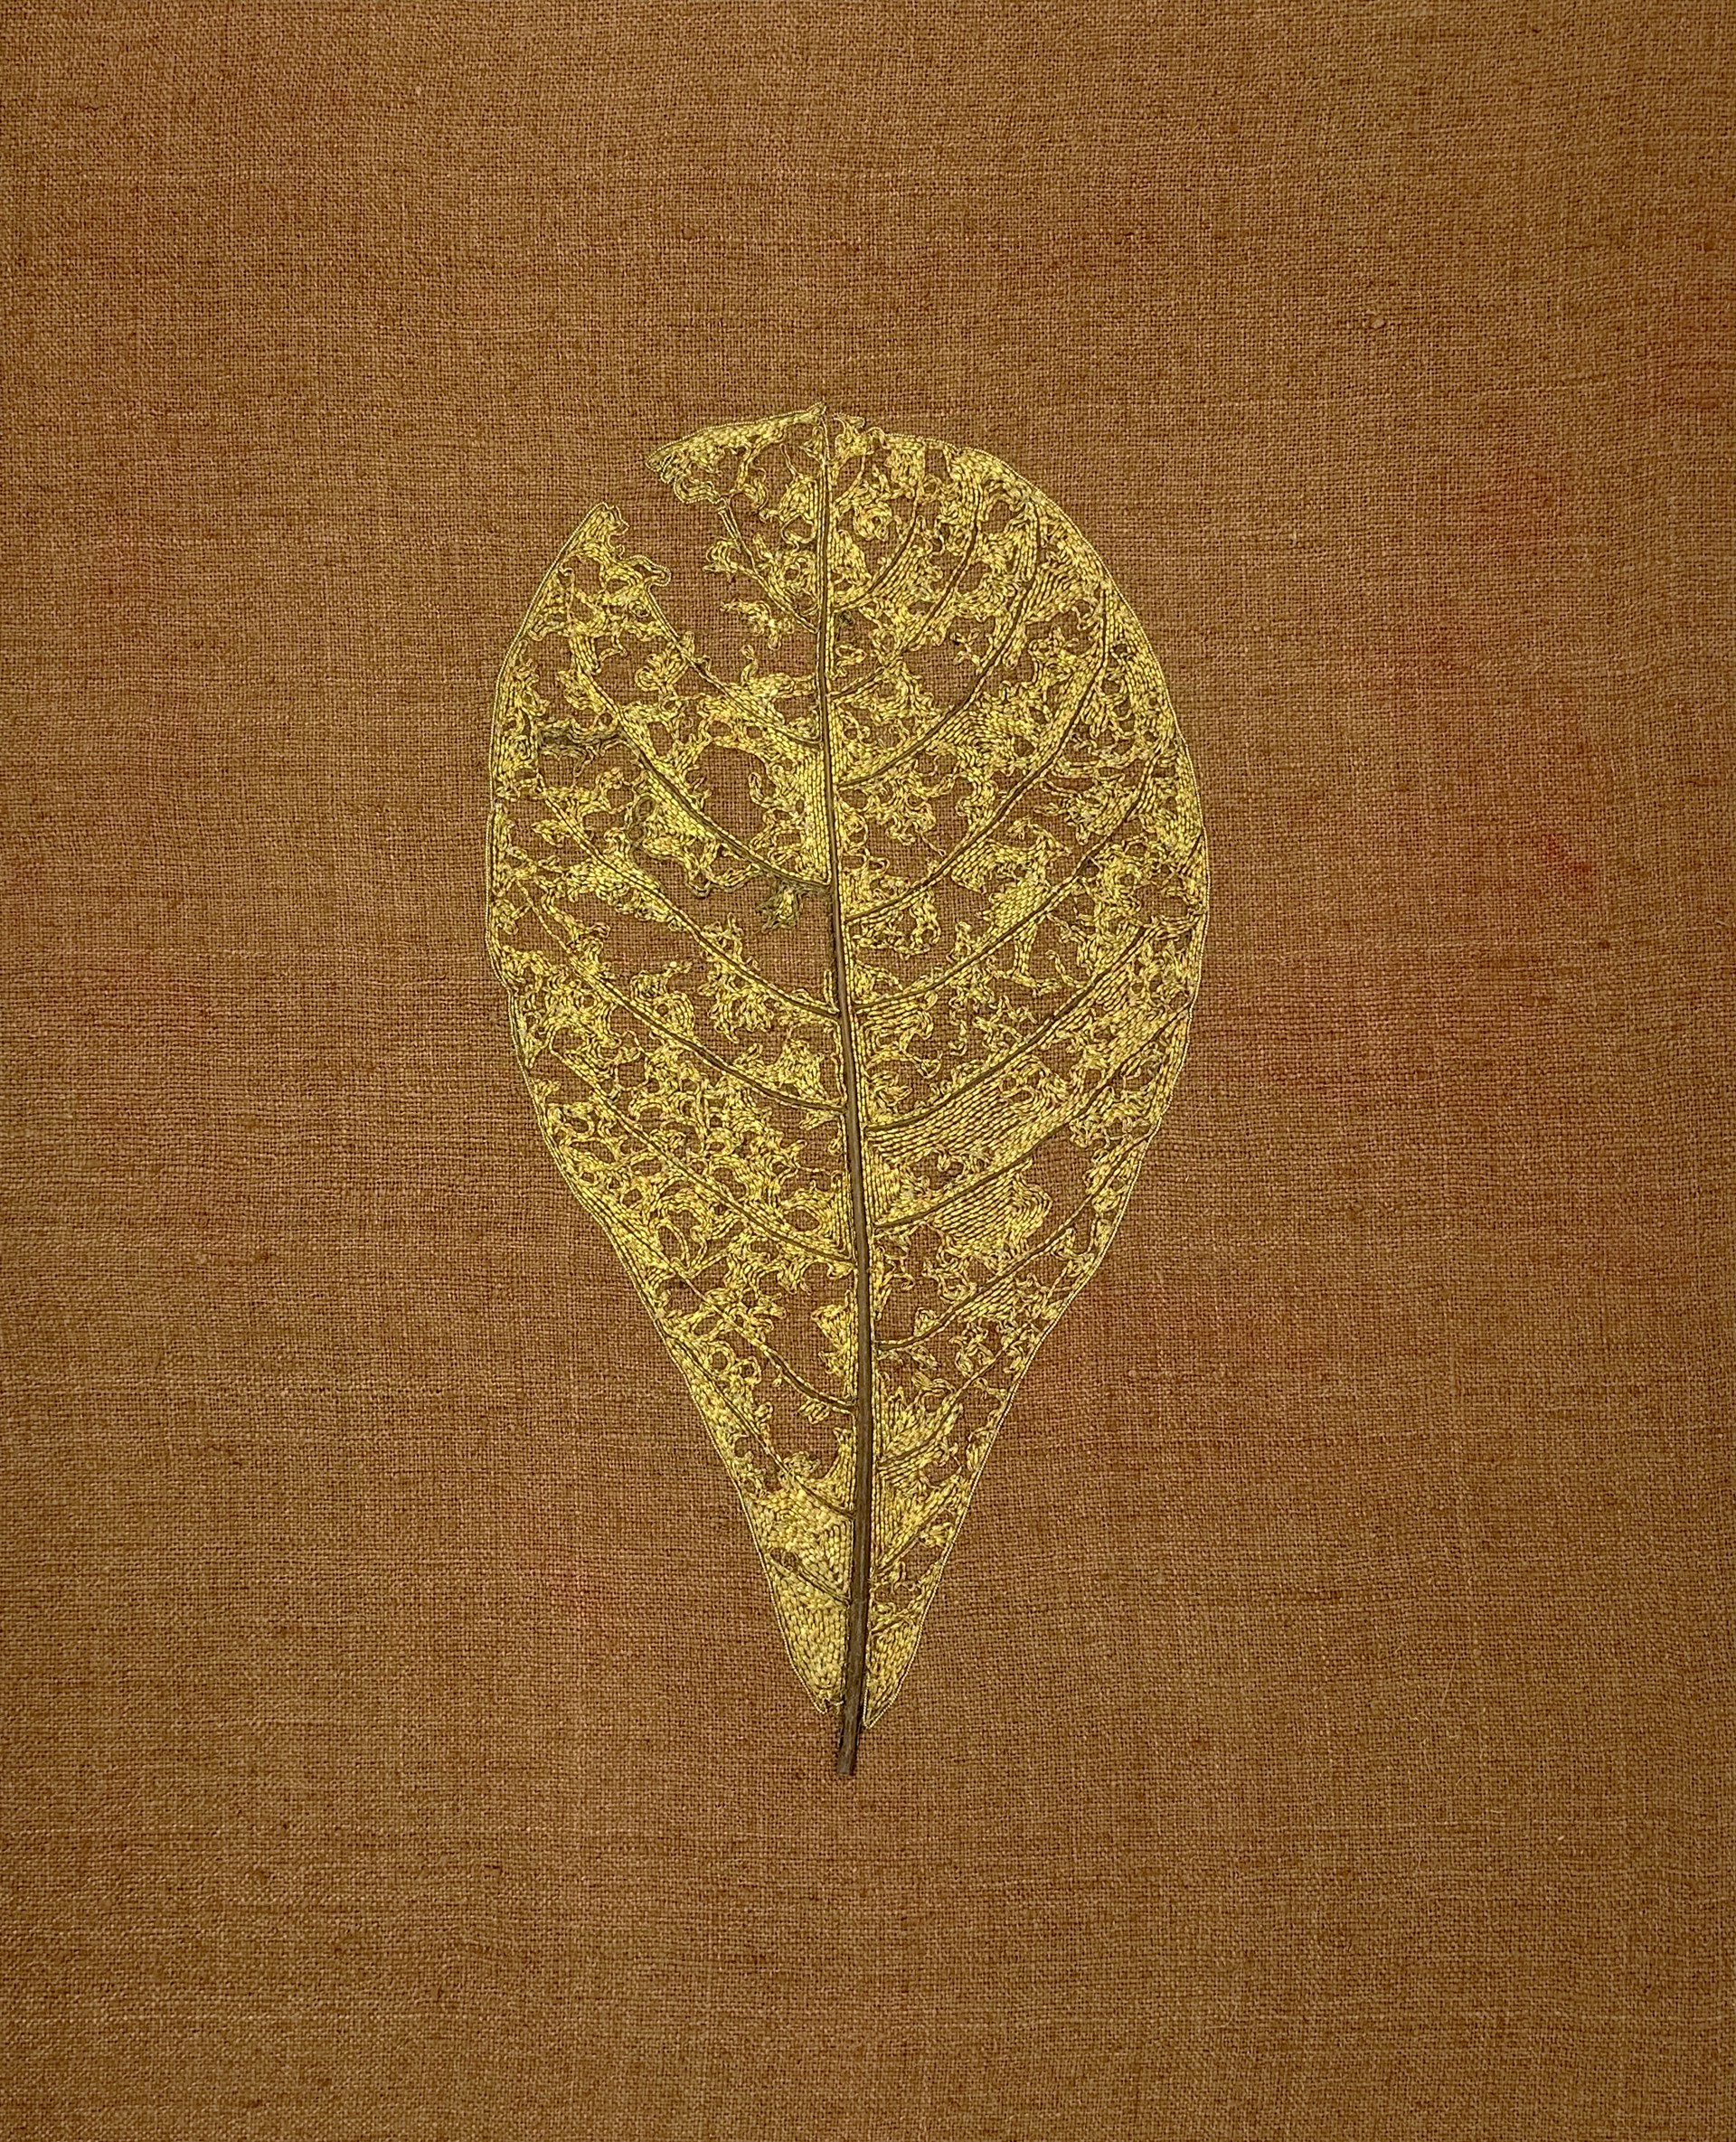 The Impermanence of Life: Feuille de Badamier II by Tiao Nithakhong Somsanith